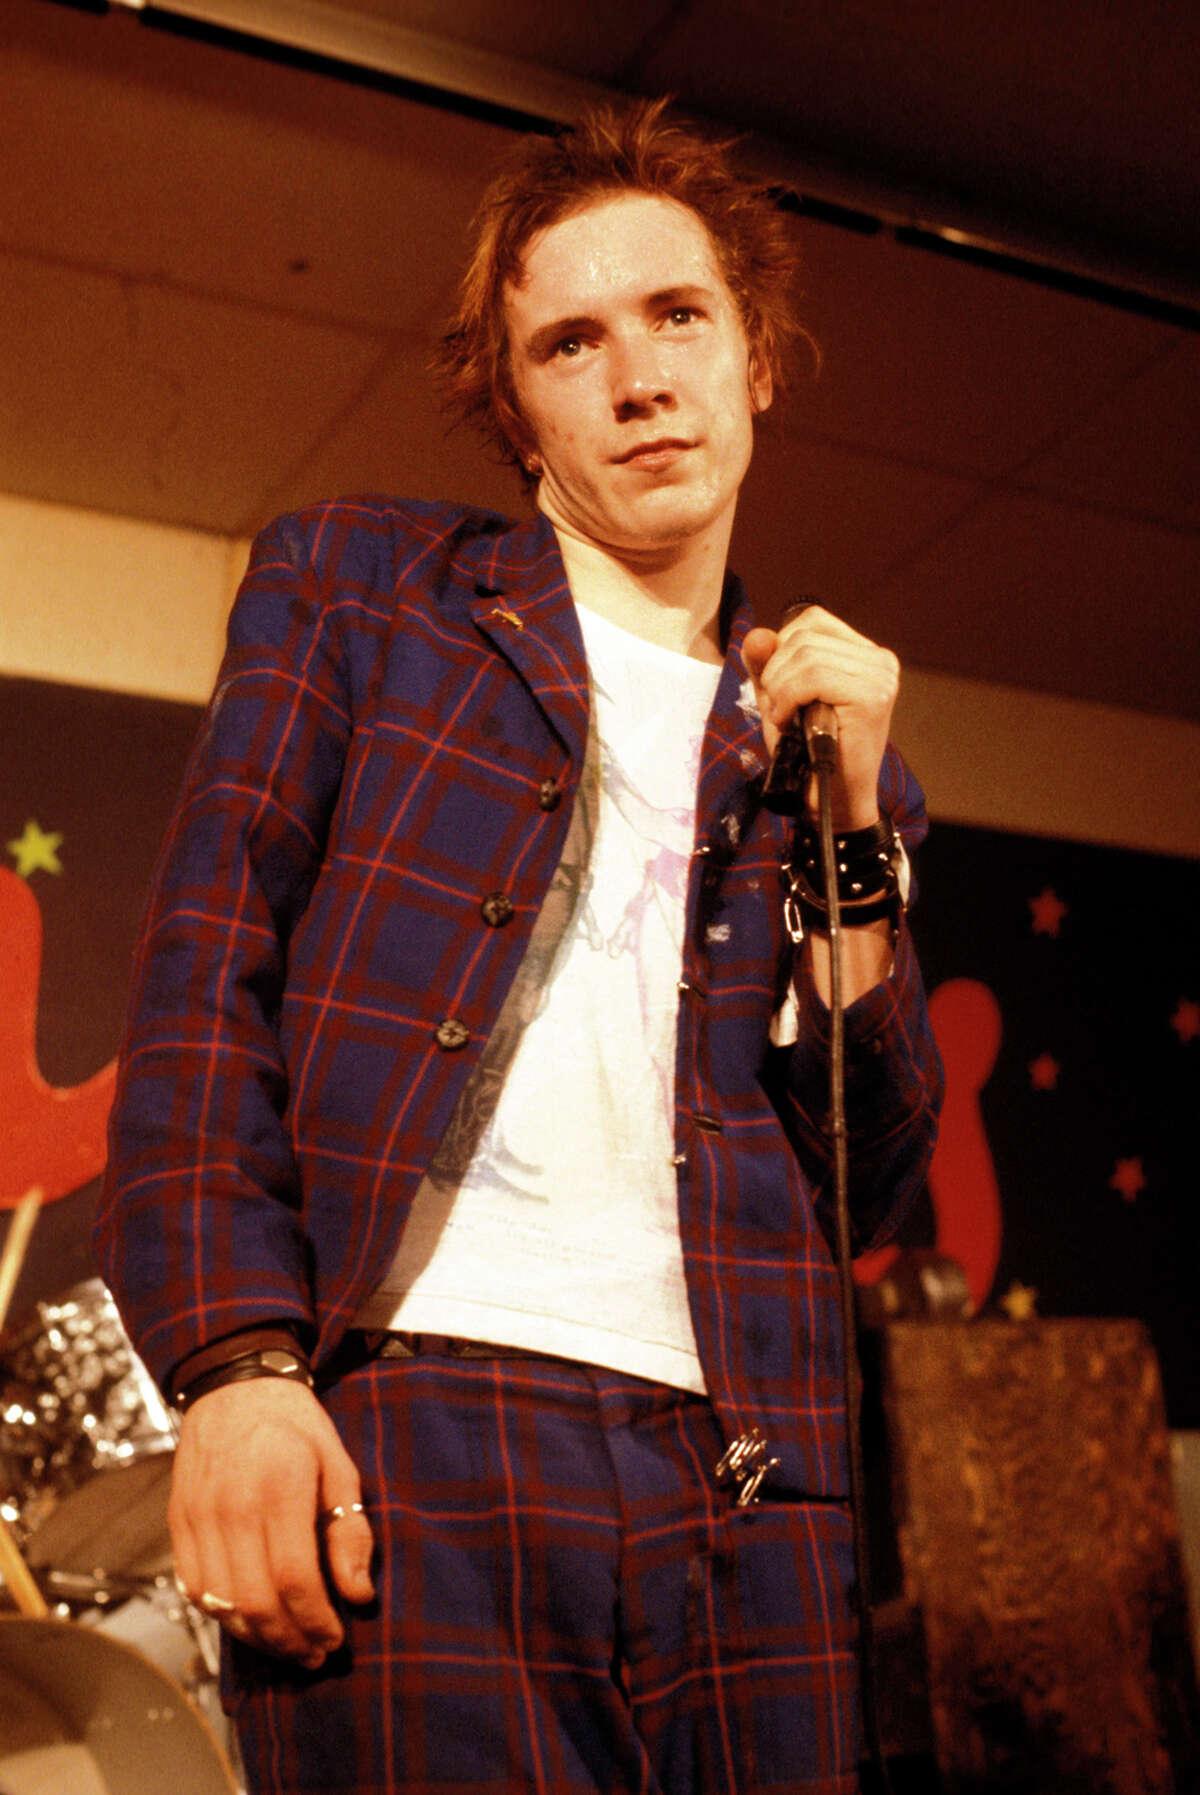 Johnny Rotten and The Sex Pistols perform at Randy's Rodeo Nightclub in San Antonio on Jan. 8, 1978.